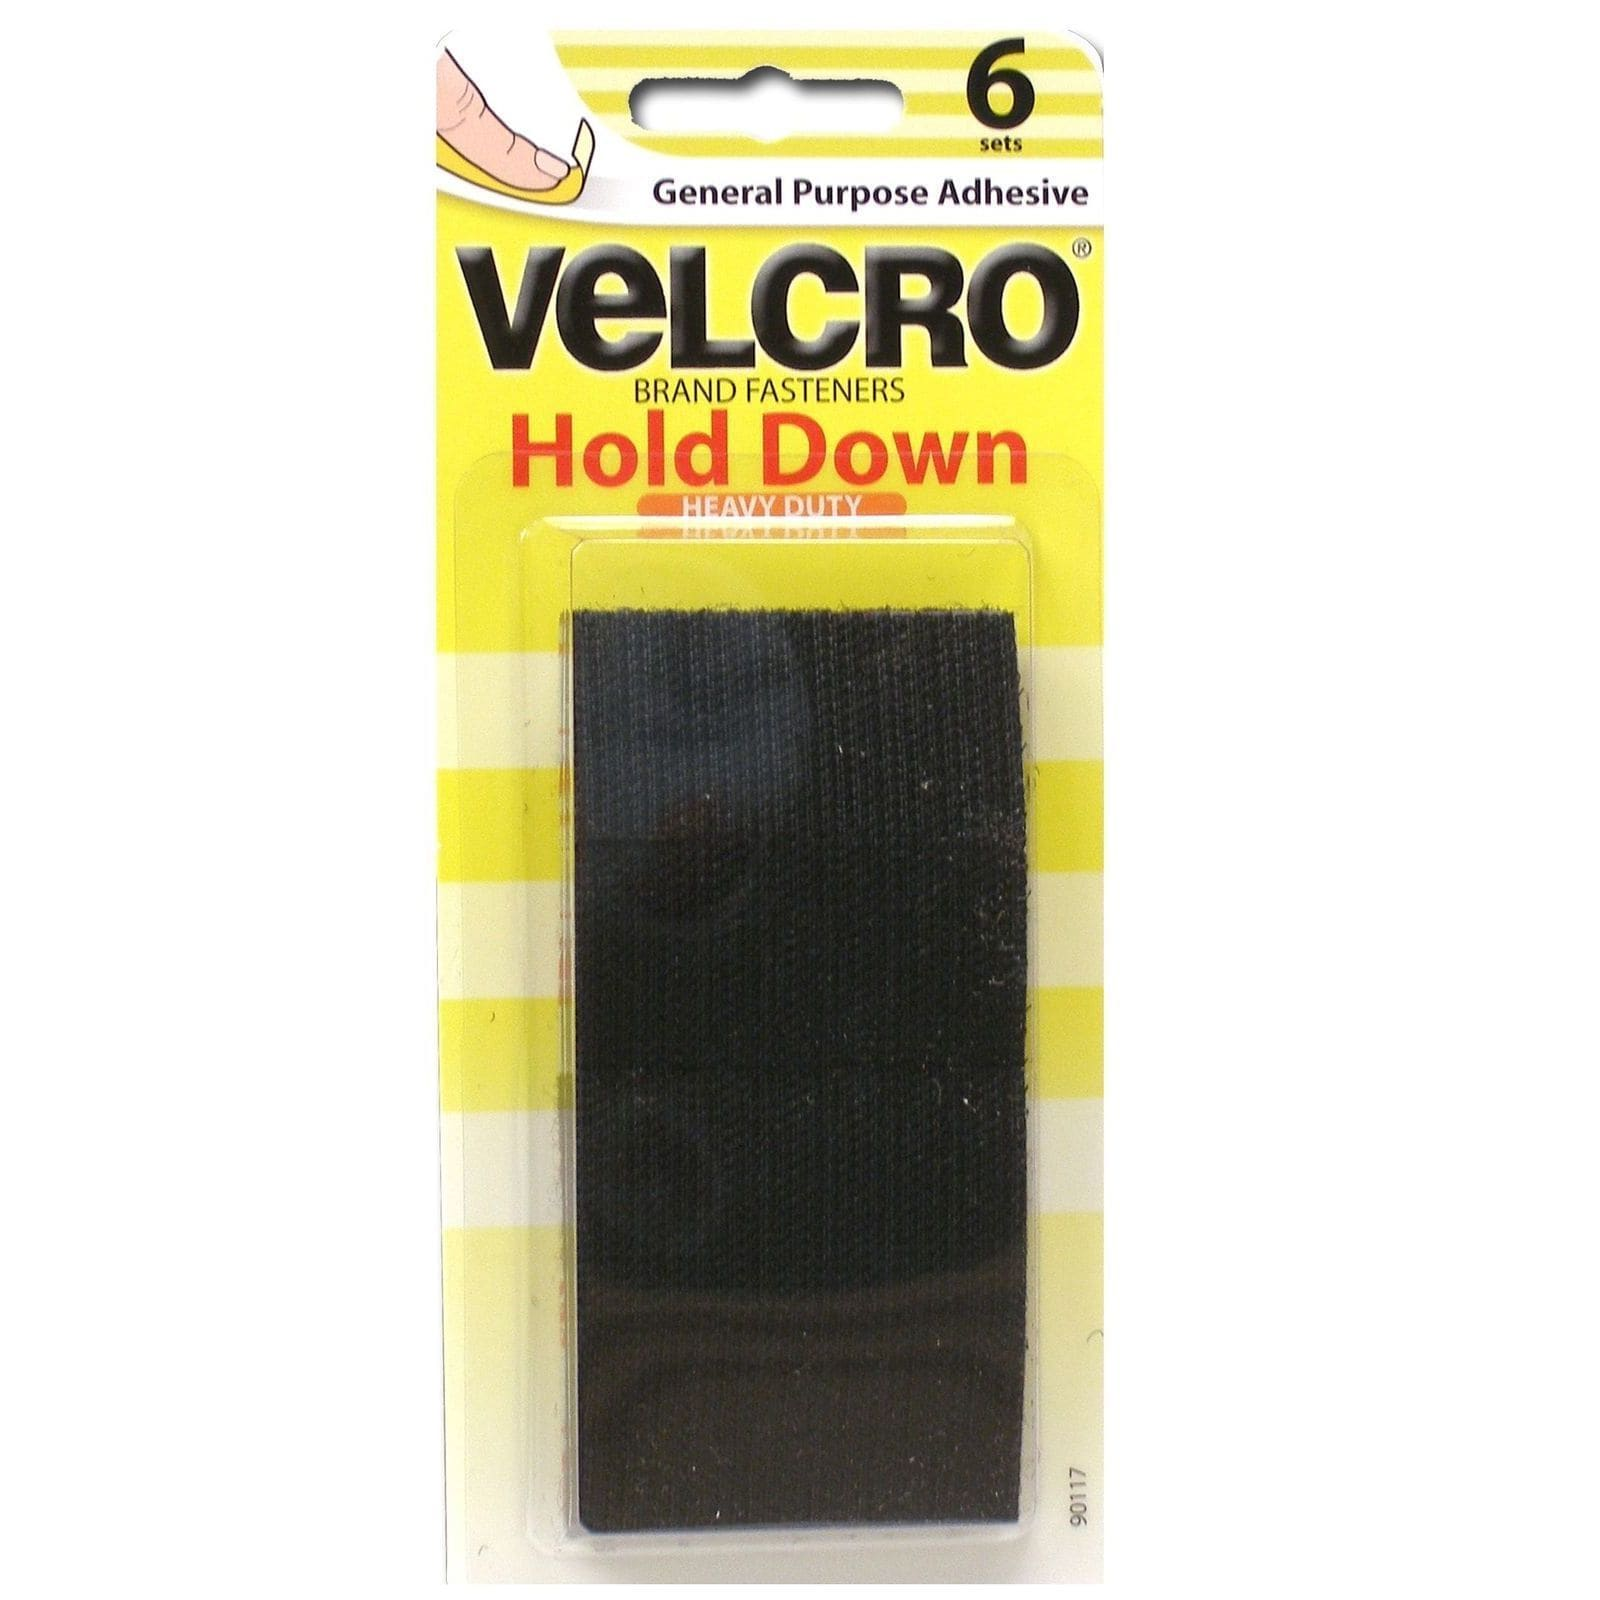 Velcro Heavy Duty Hold Down by Overstock